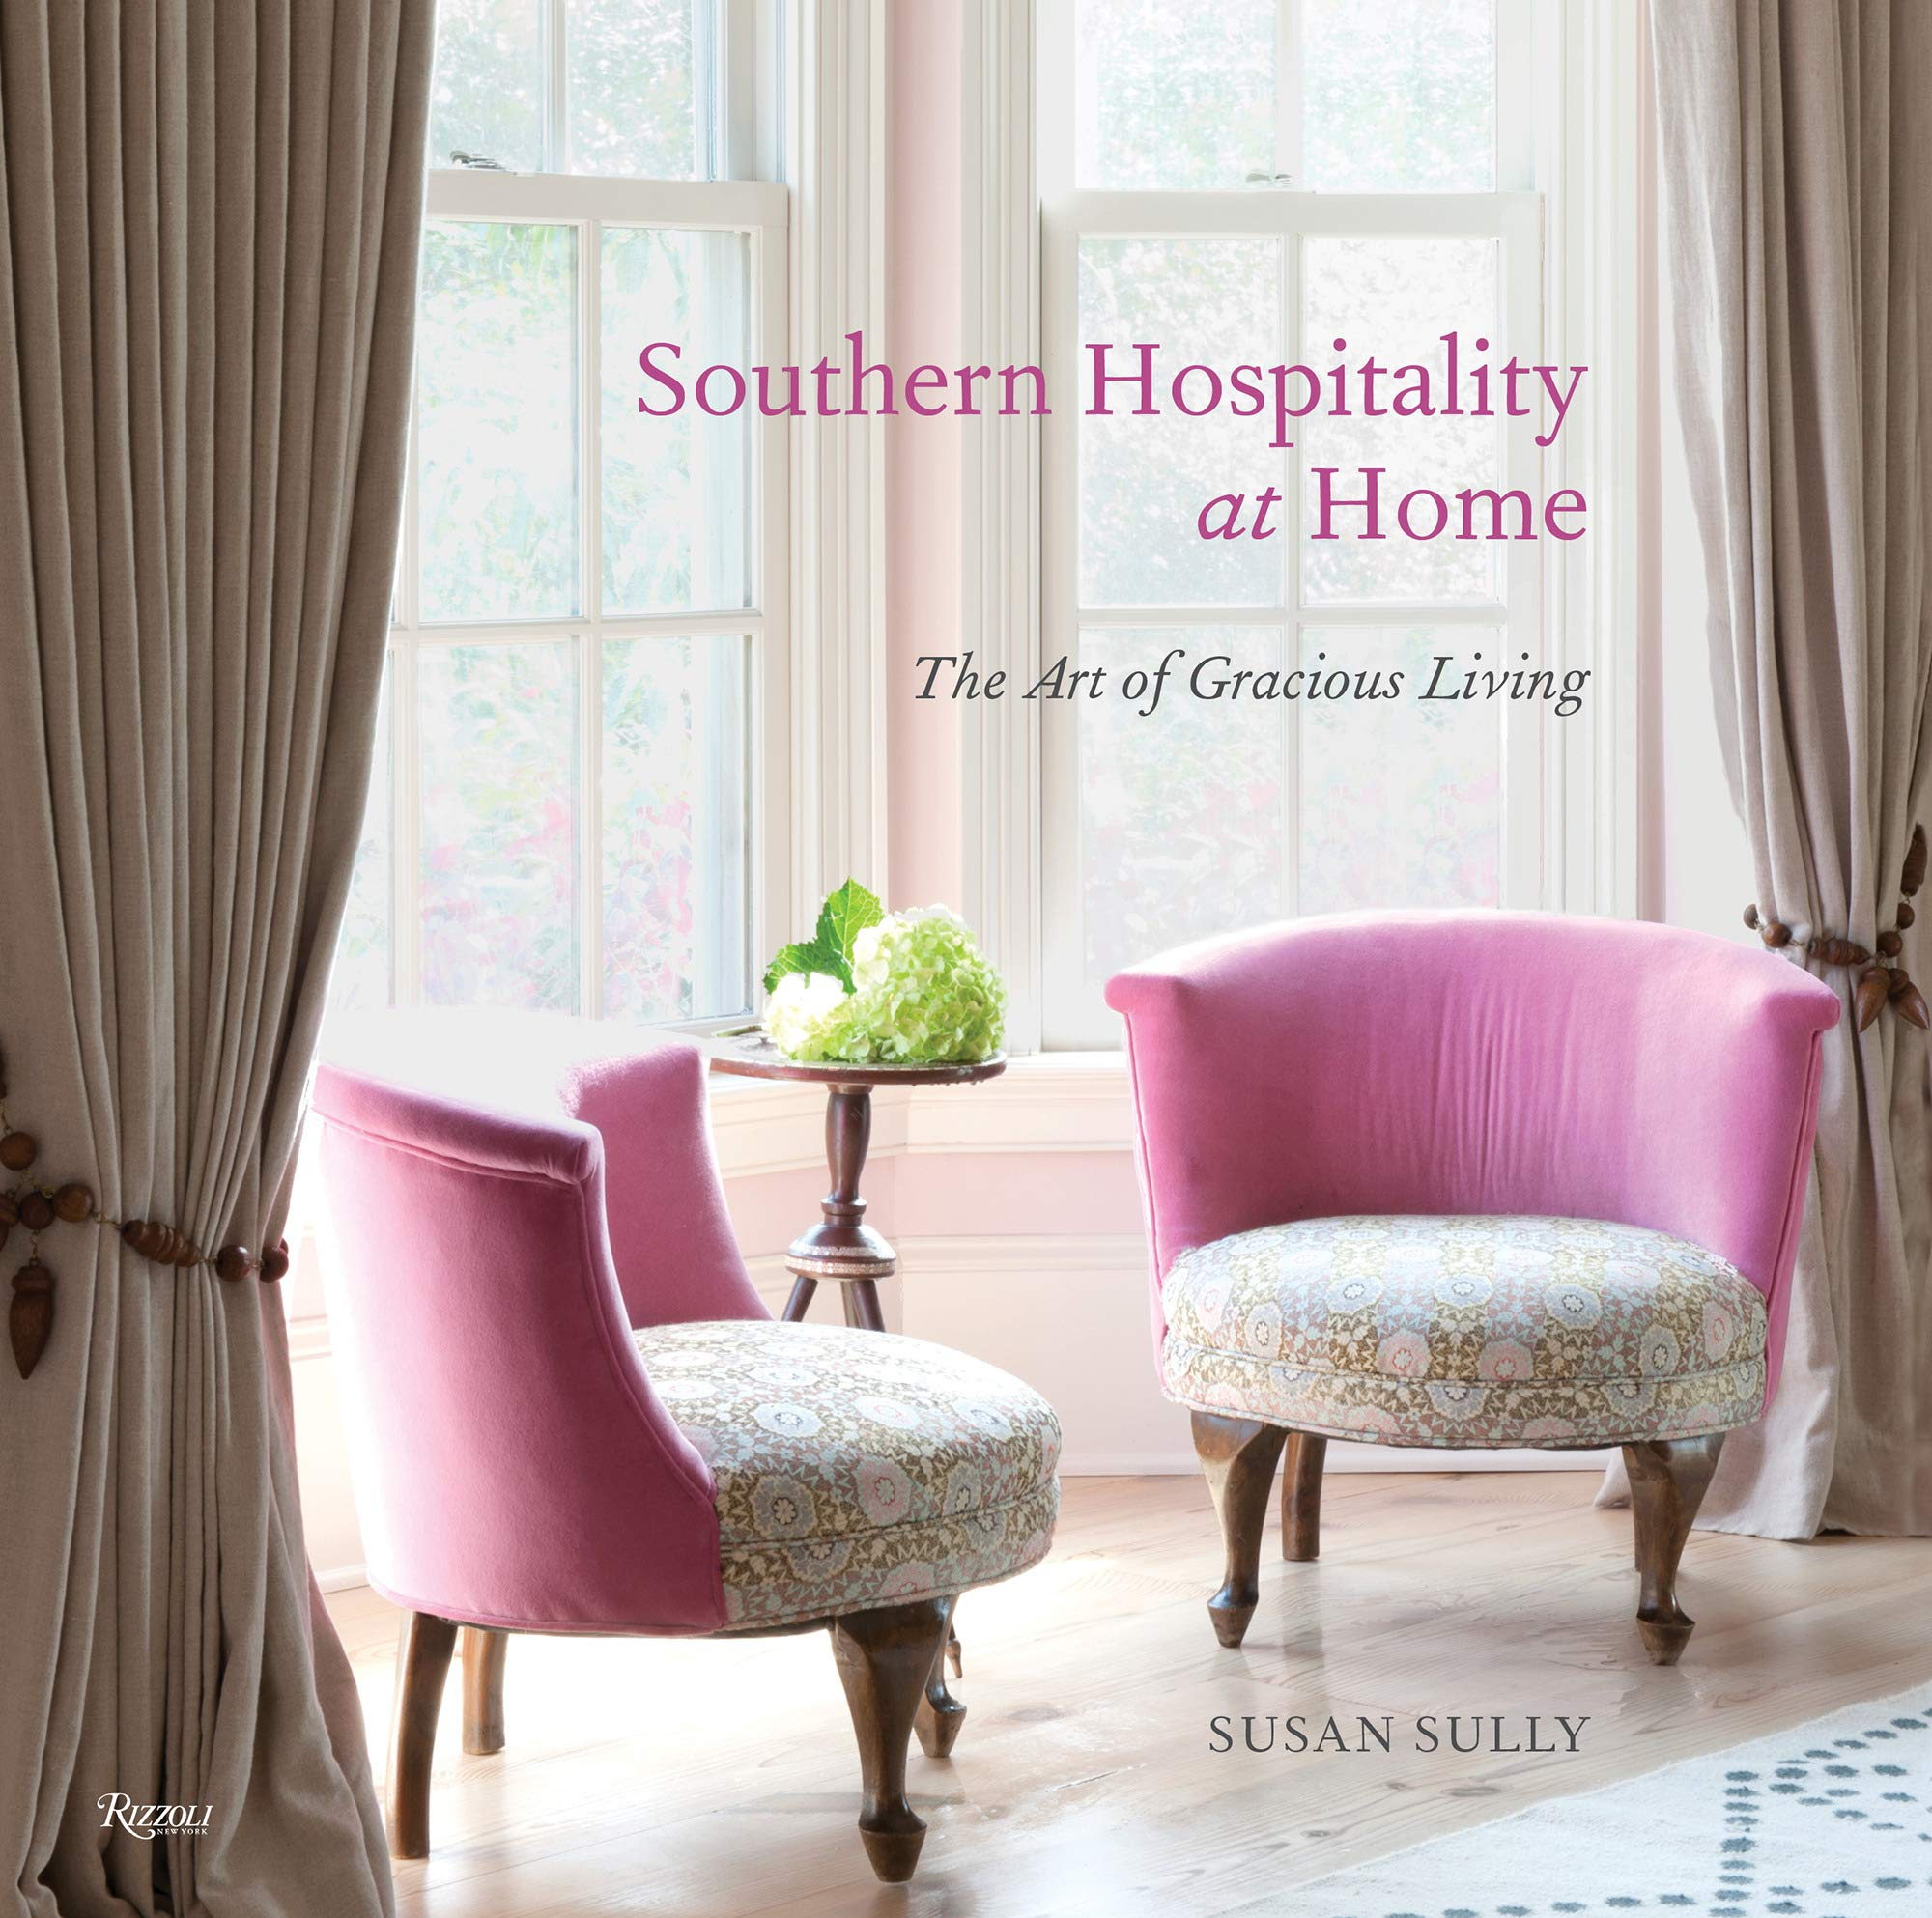 Southern Hospitality at Home: The Art of Gracious Living by Rizzoli